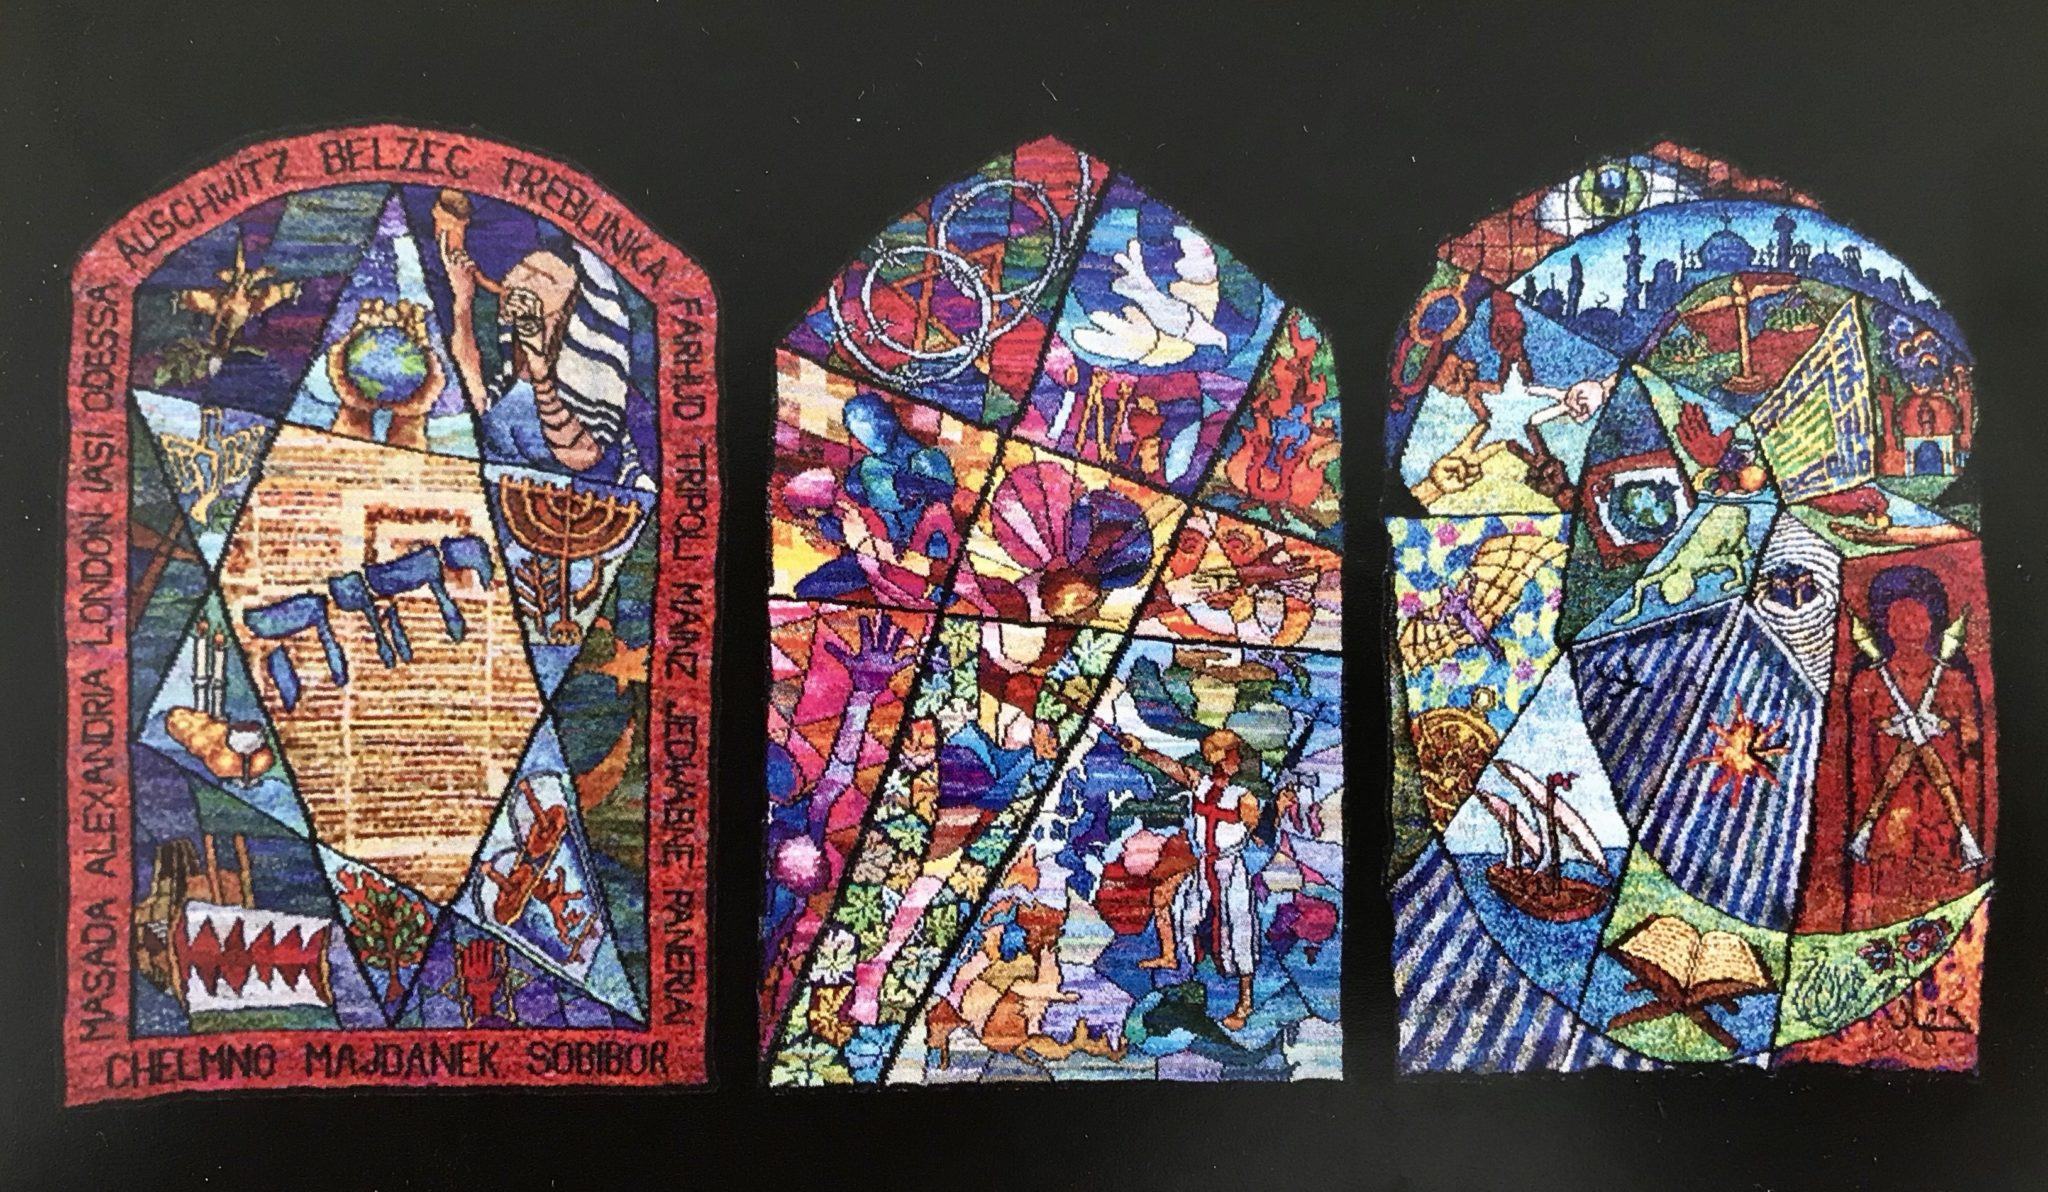 Saturday Sept 21, 2019 @ 7:30 pm.  A one-man play & talkback about the artistic and spiritual journey of Kirk Dunn, who took 15 years to design and hand knit a triptych of large tapestries in the style of stained glass windows, exploring the commonalities and conflicts of the Abrahamic faiths. There is no other project like it in the world.l